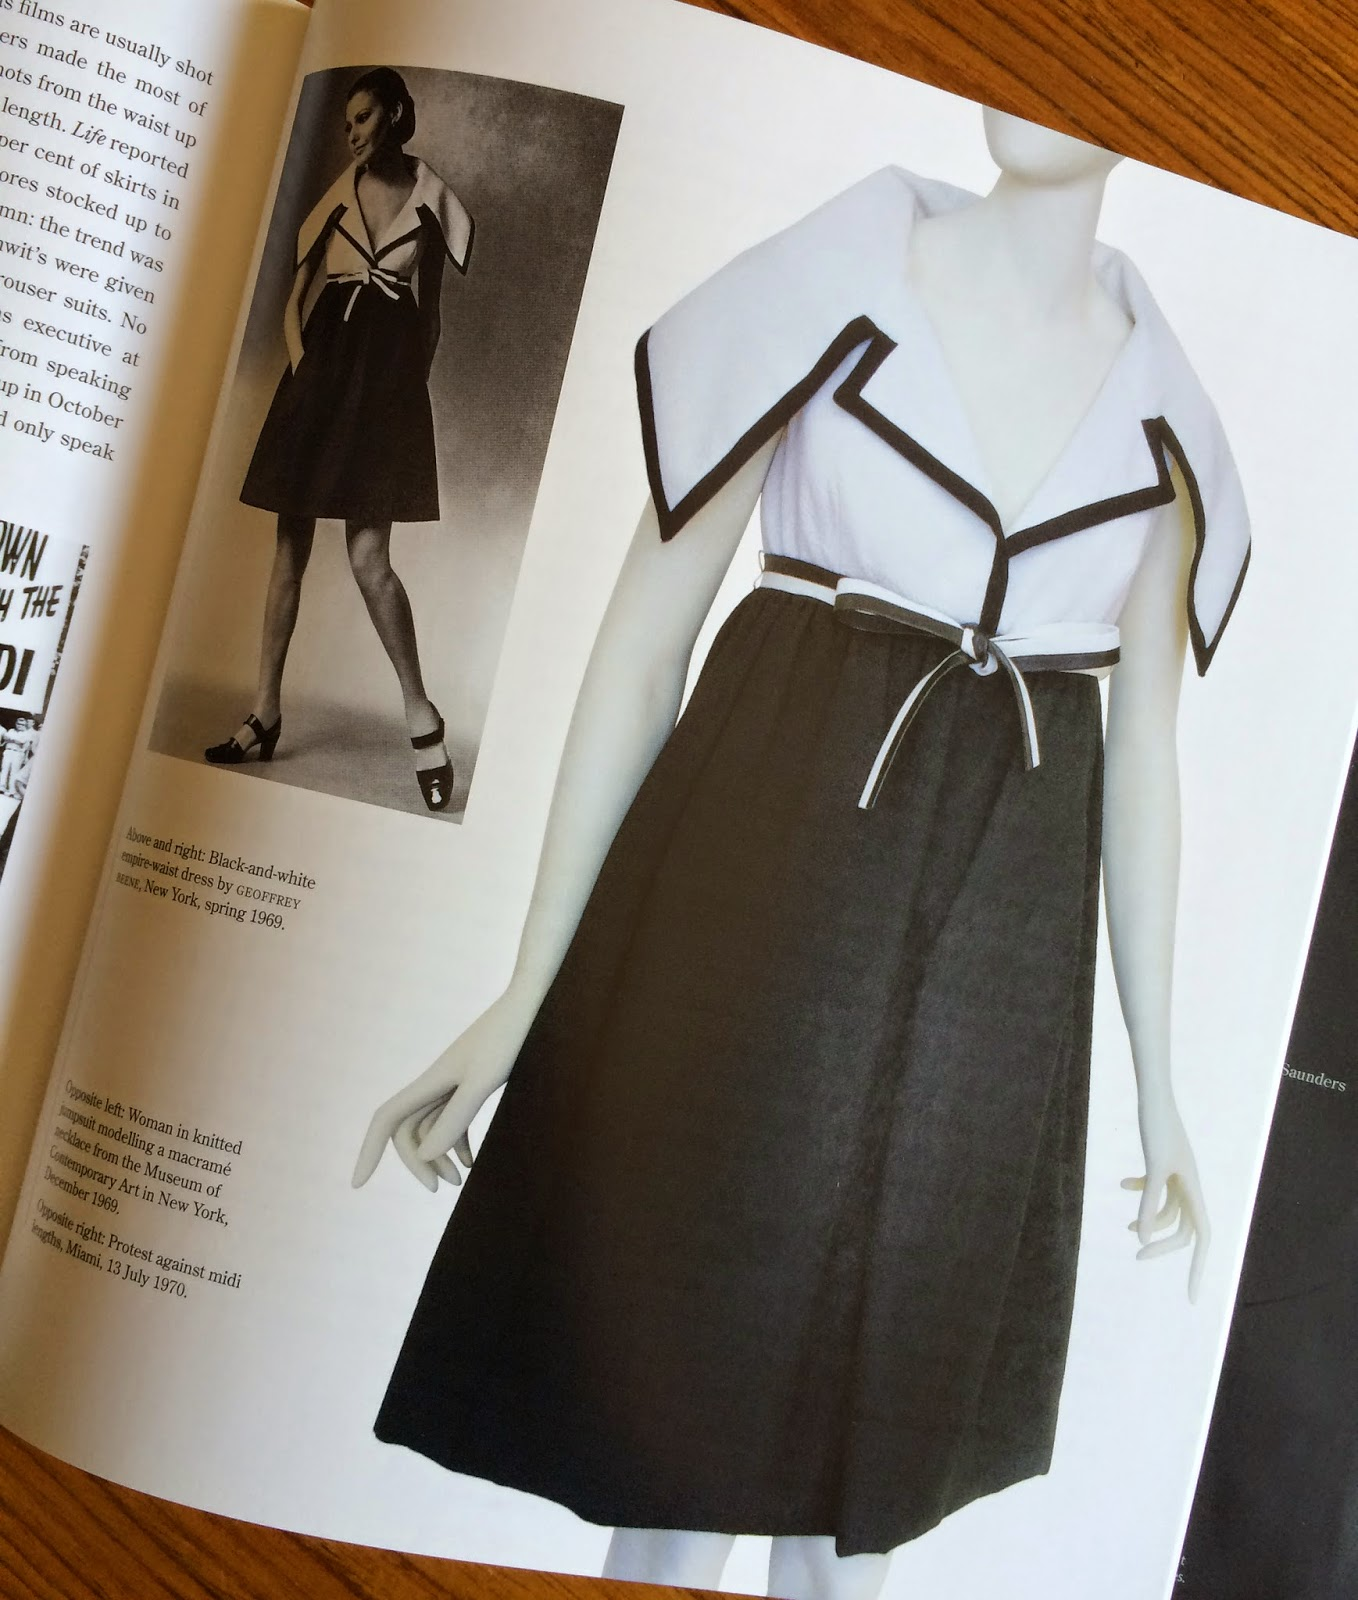 e75d98adf492 Book review - Sixties Fashion - From  Less is more  to Youthquake ...